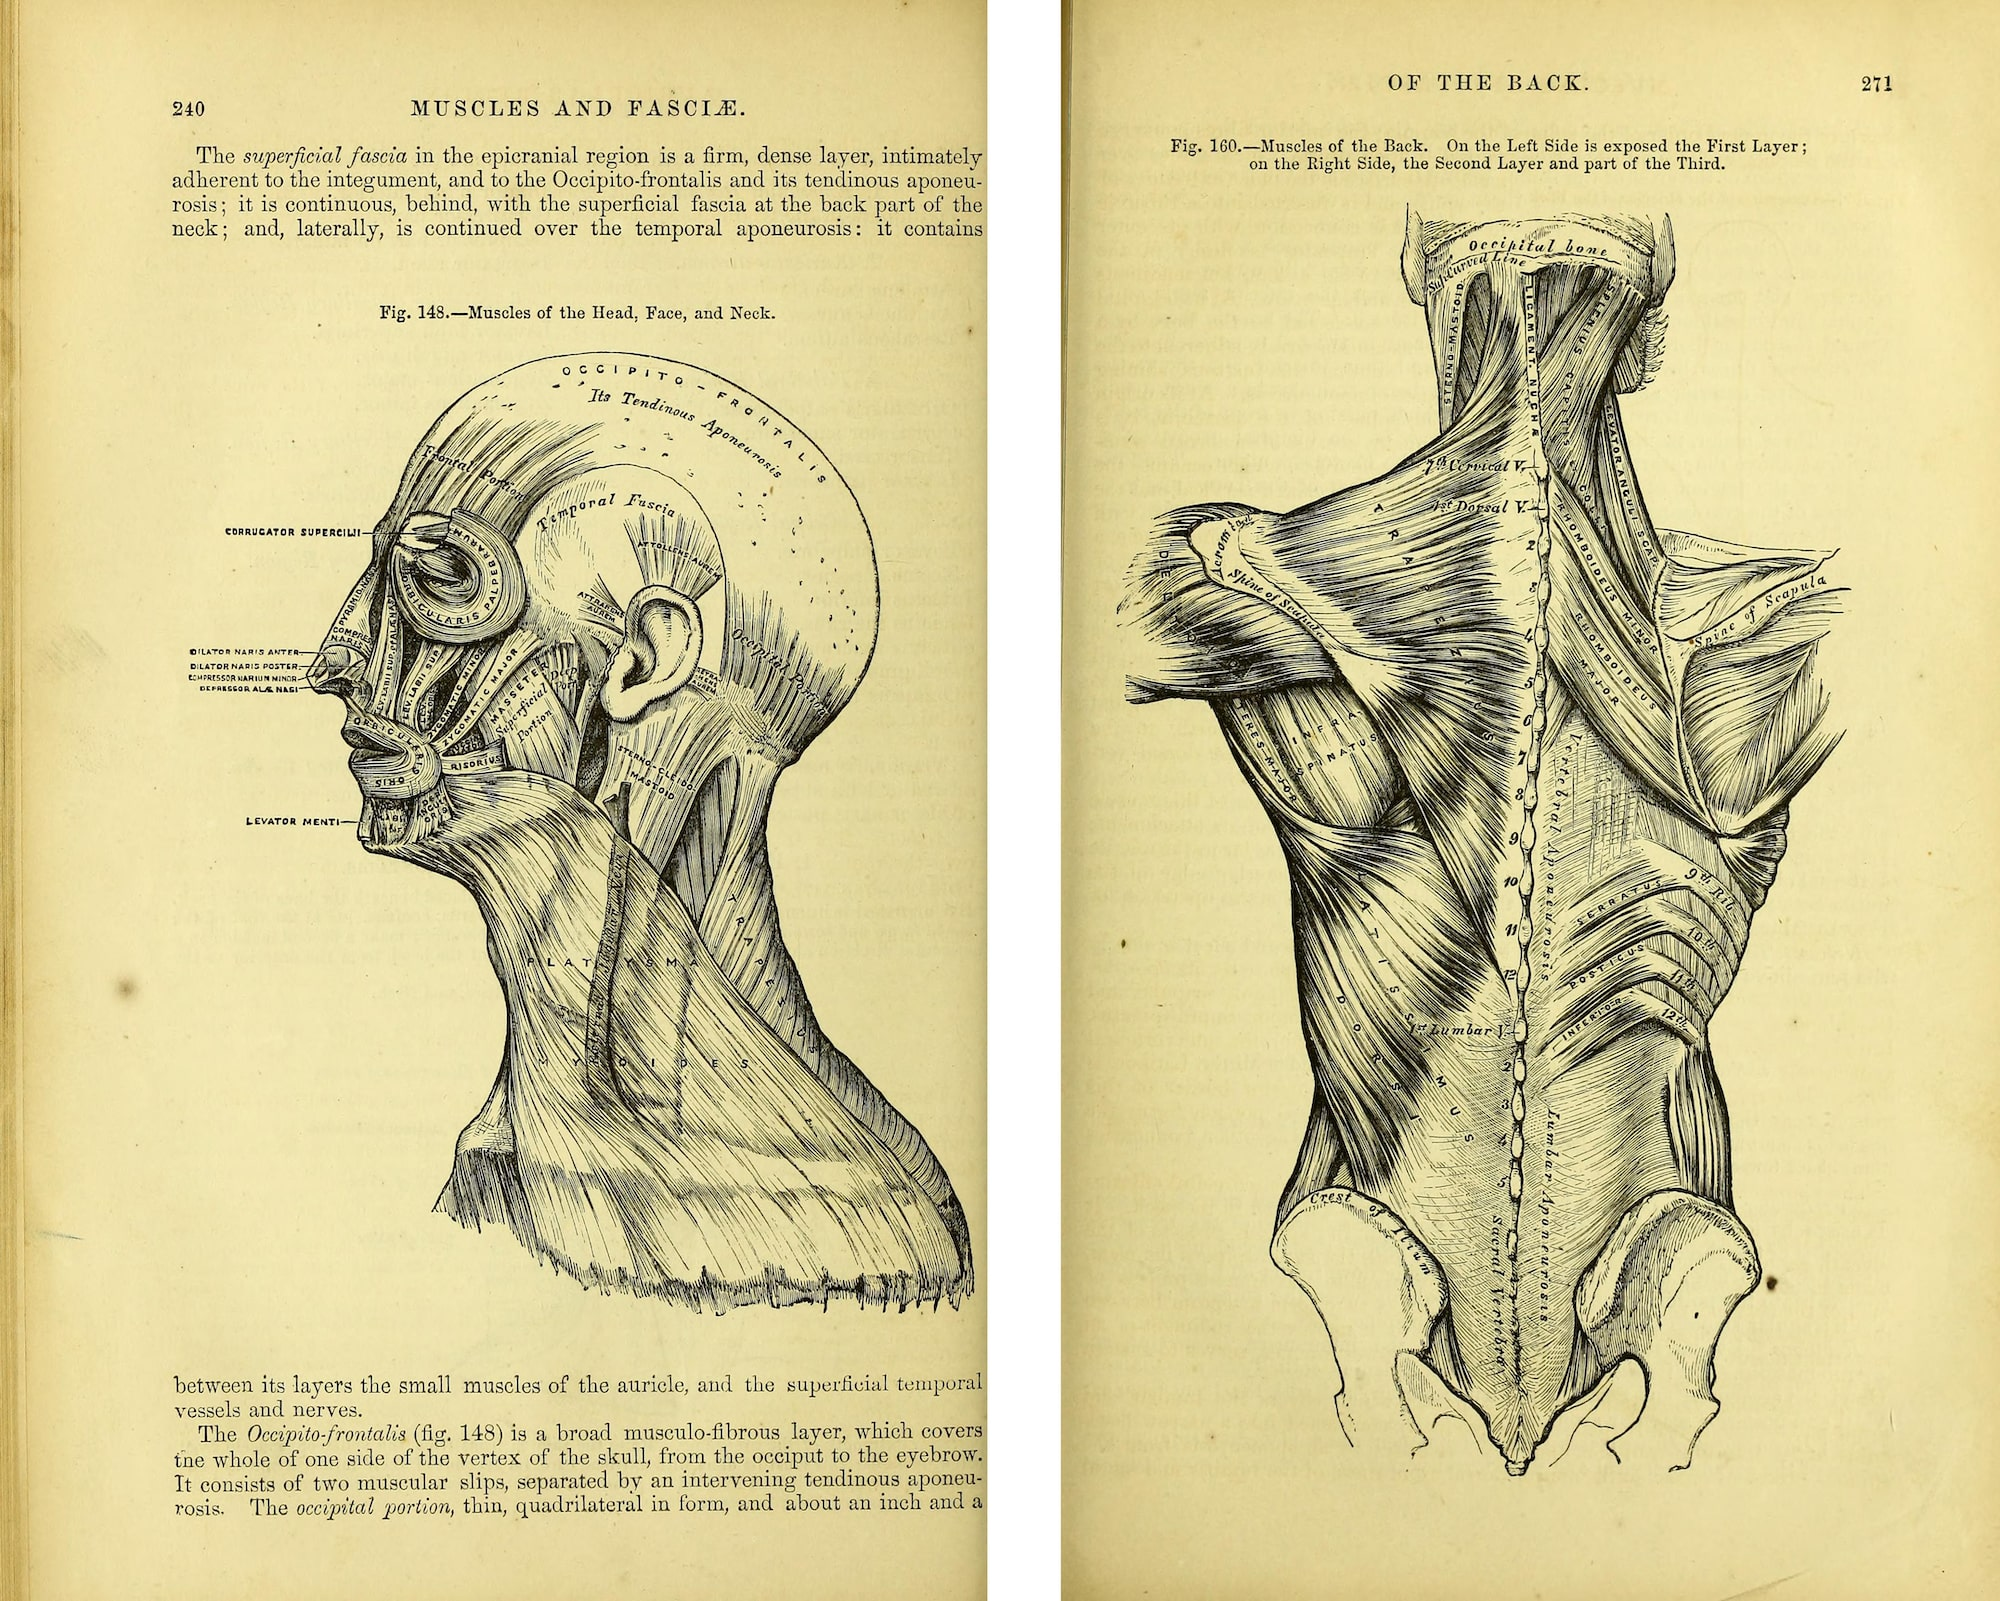 Anatomical illustration of muscles of the head and neck on left and muscles of the back on the right.